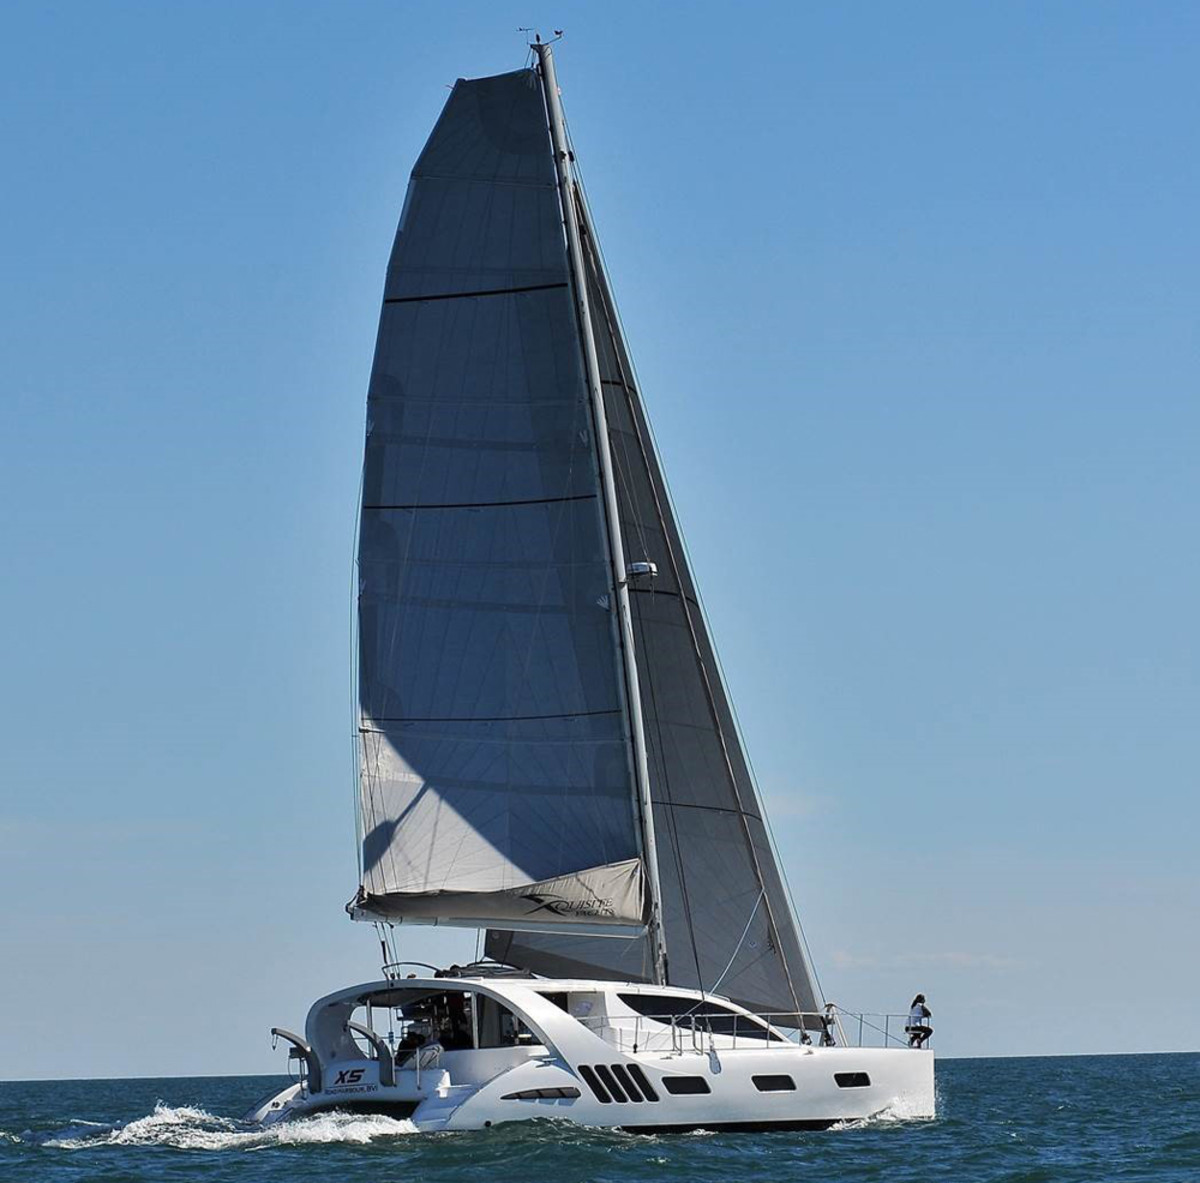 The new X5 Sail is a luxury cruising catamaran from Xquisite Yachts.